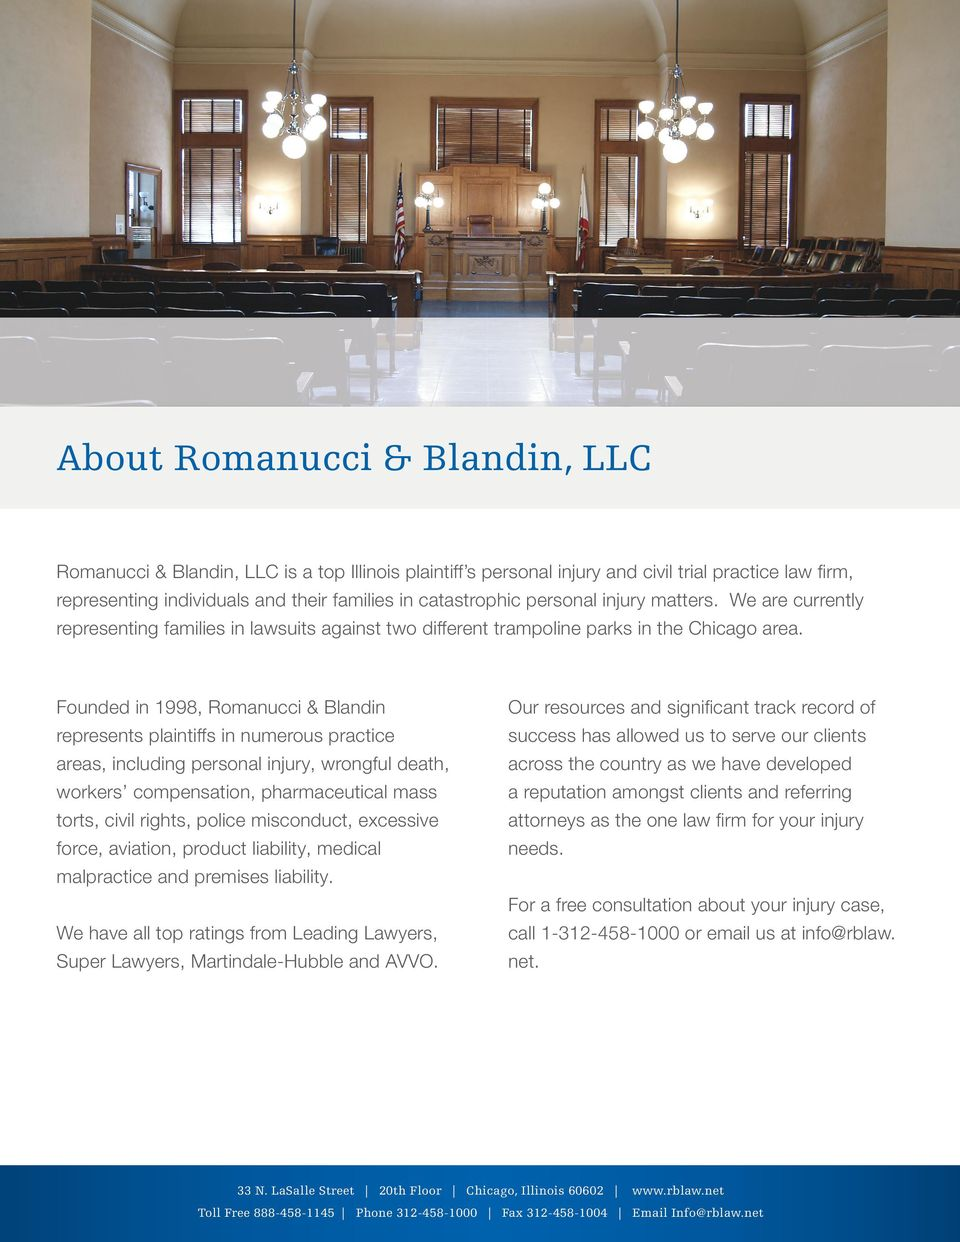 Founded in 1998, Romanucci & Blandin represents plaintiffs in numerous practice areas, including personal injury, wrongful death, workers compensation, pharmaceutical mass torts, civil rights, police